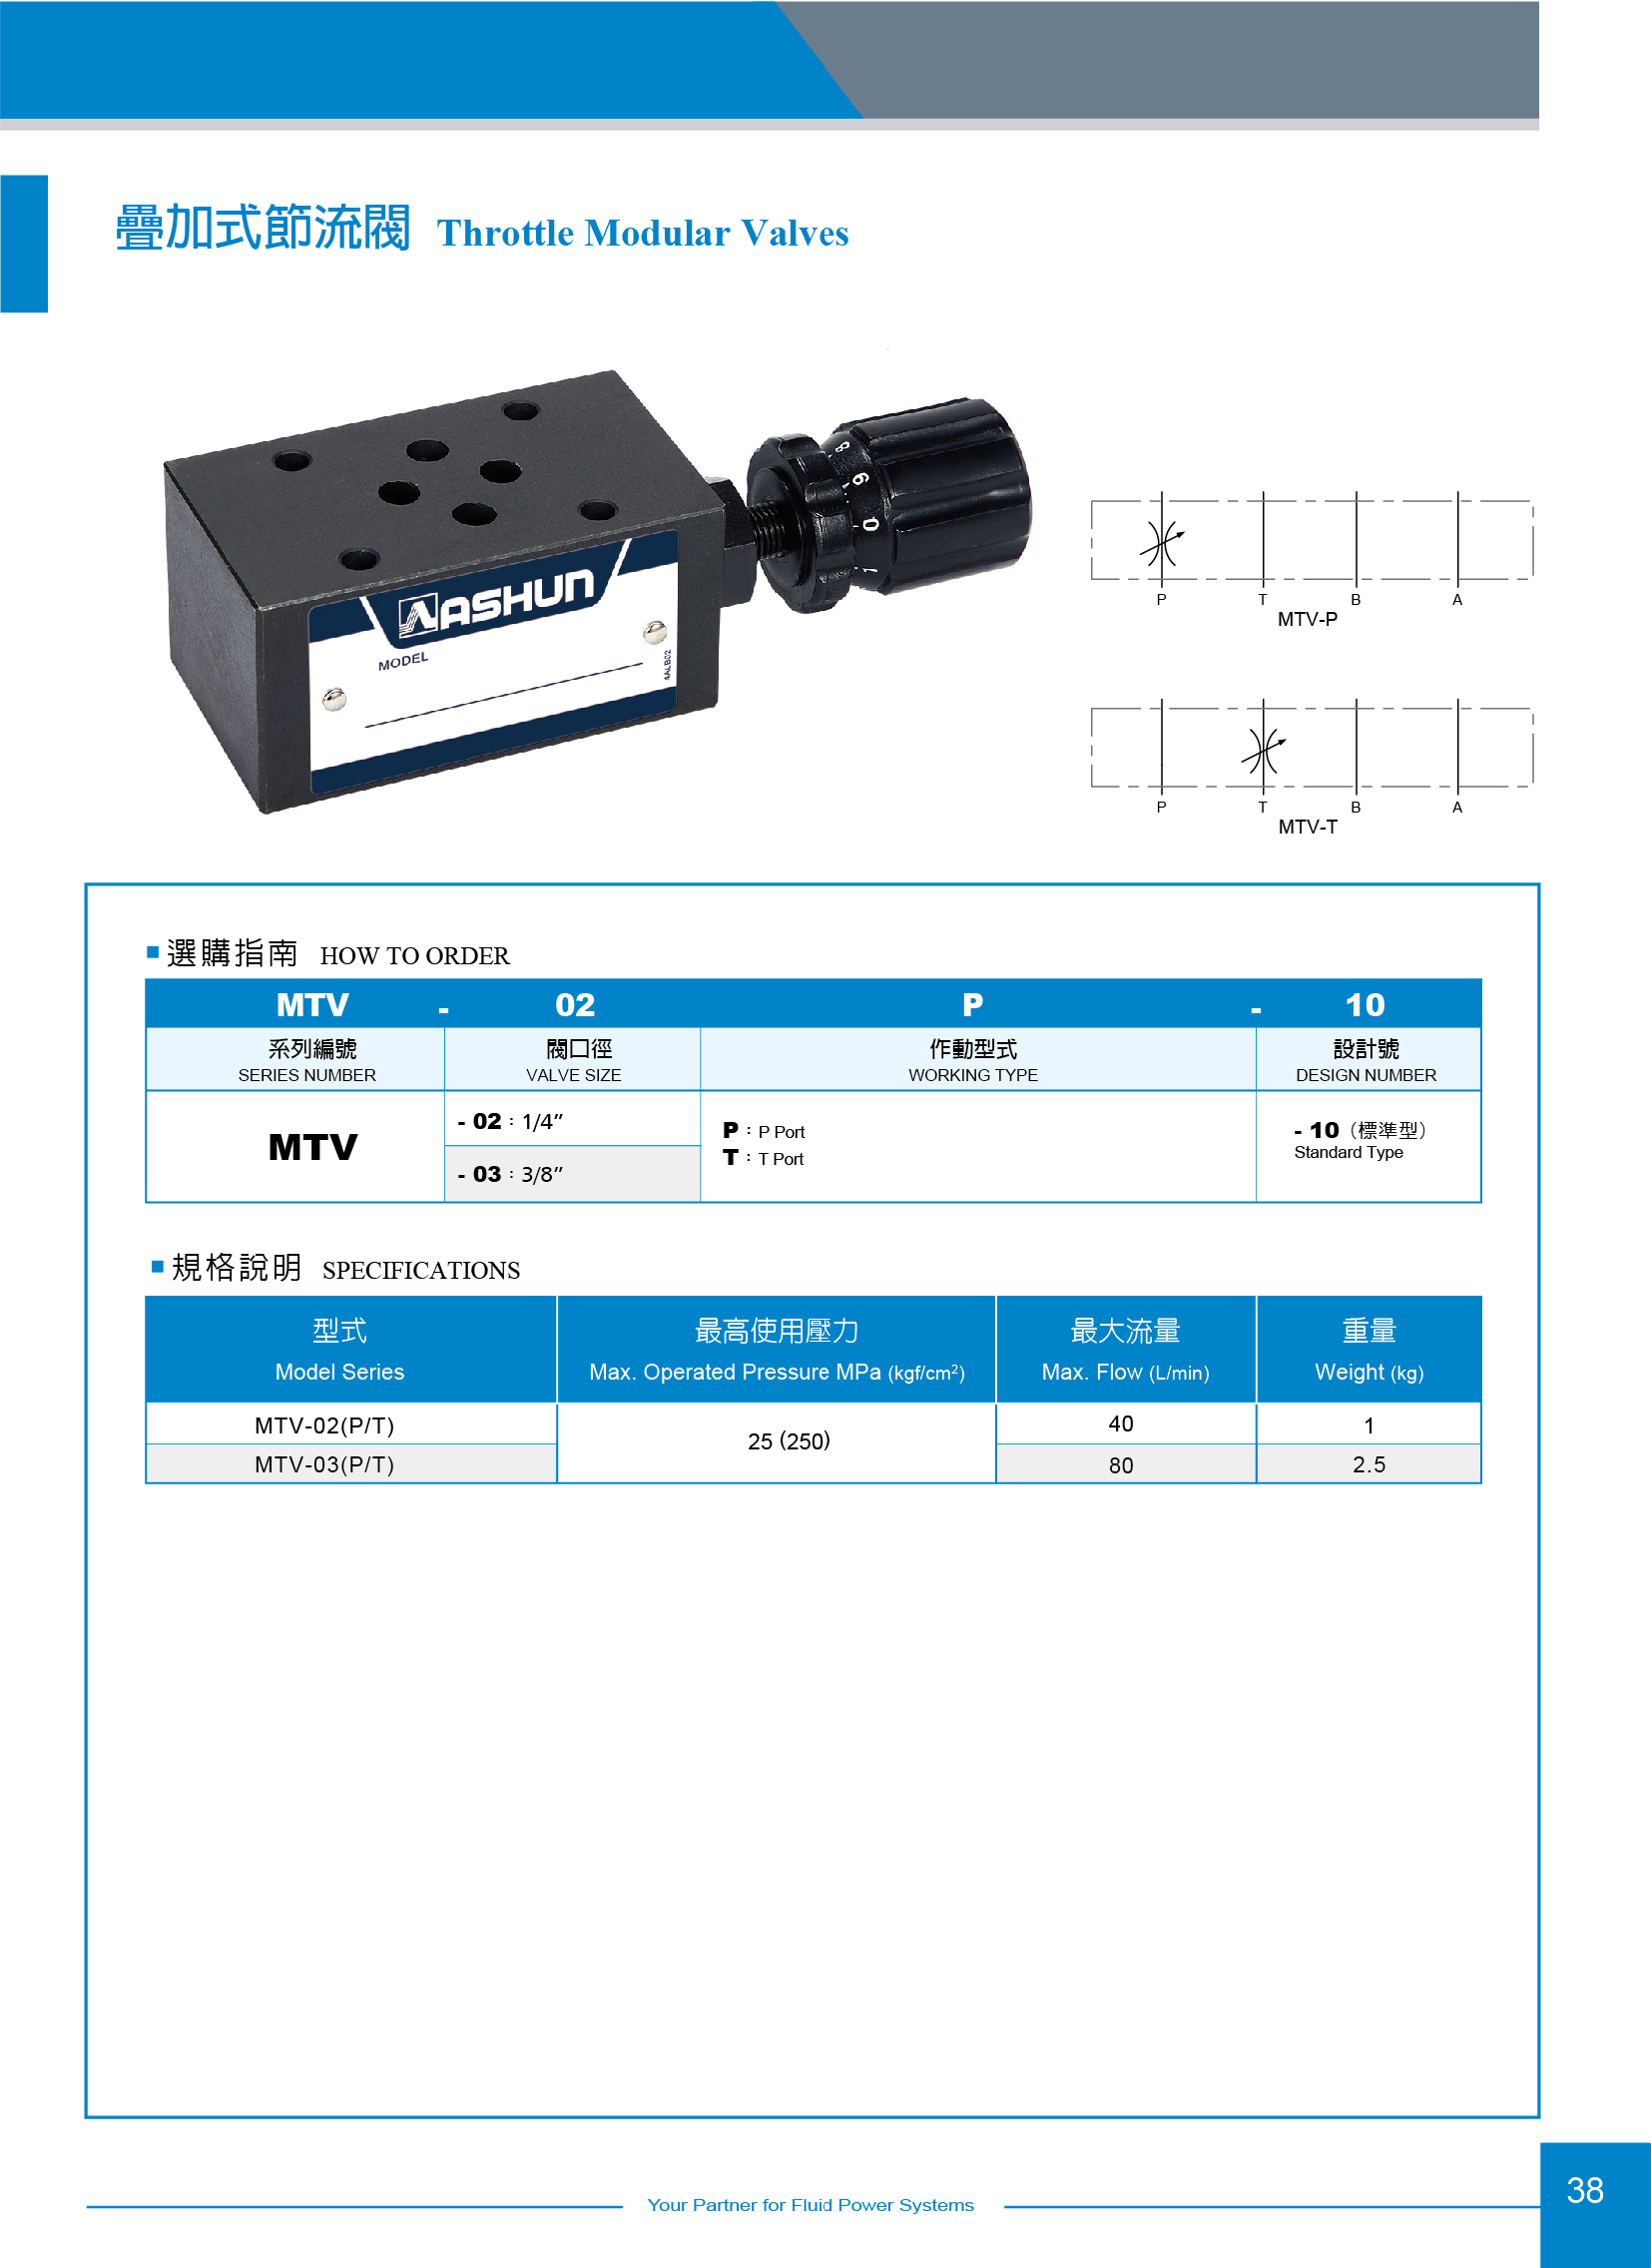 Throttle Modular Valves - Description